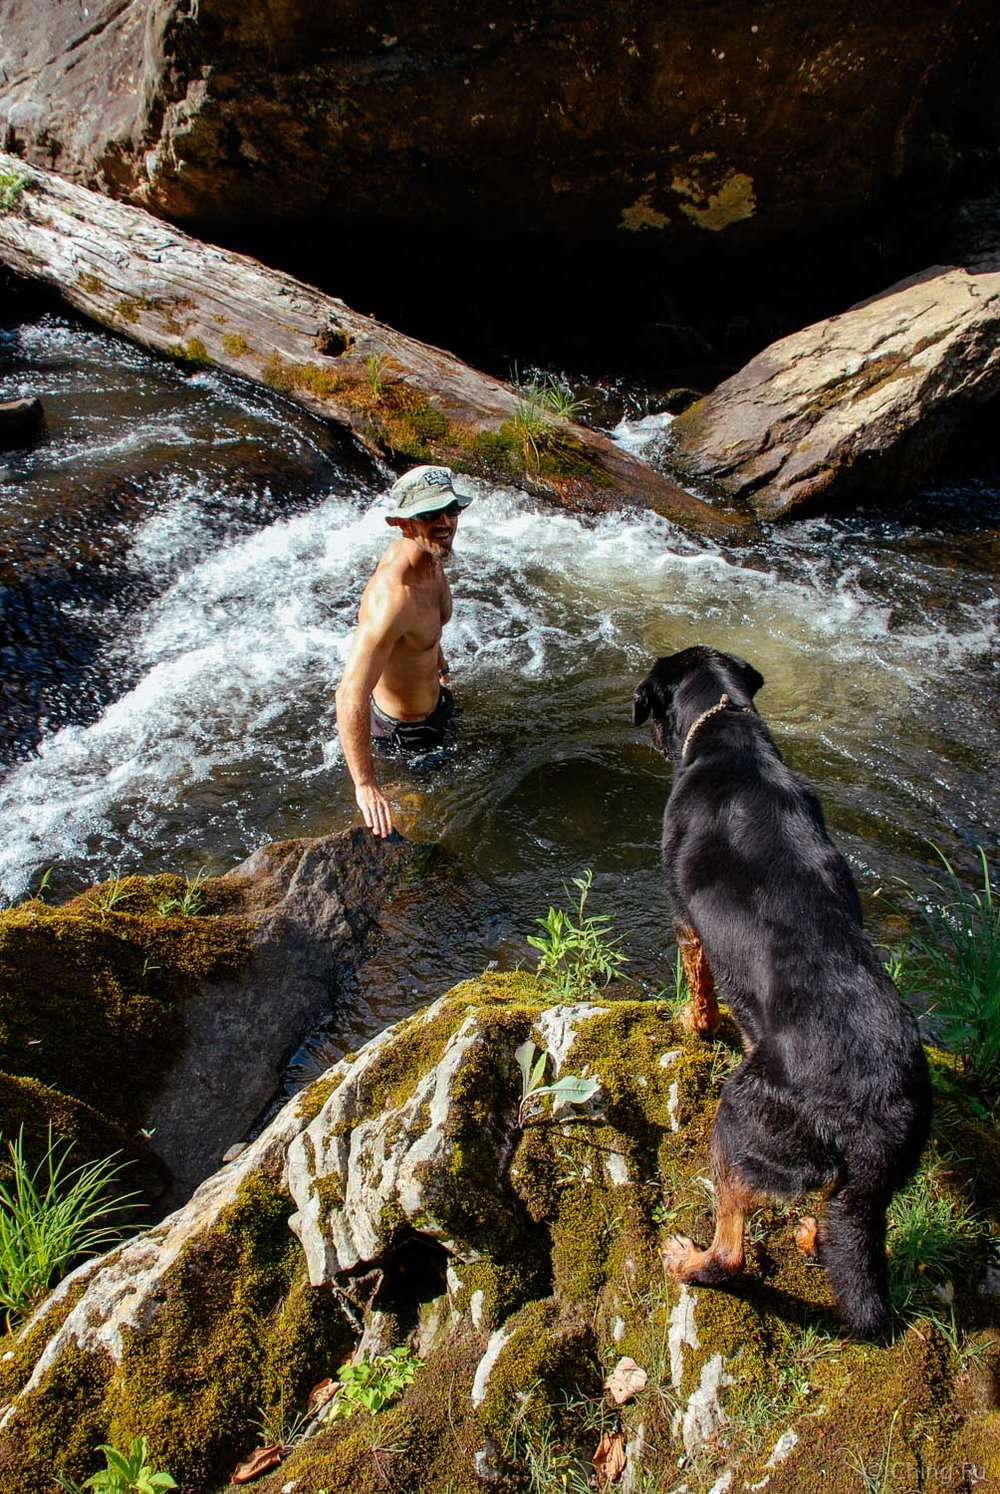 Tybee and Andrew at Chattooga River.